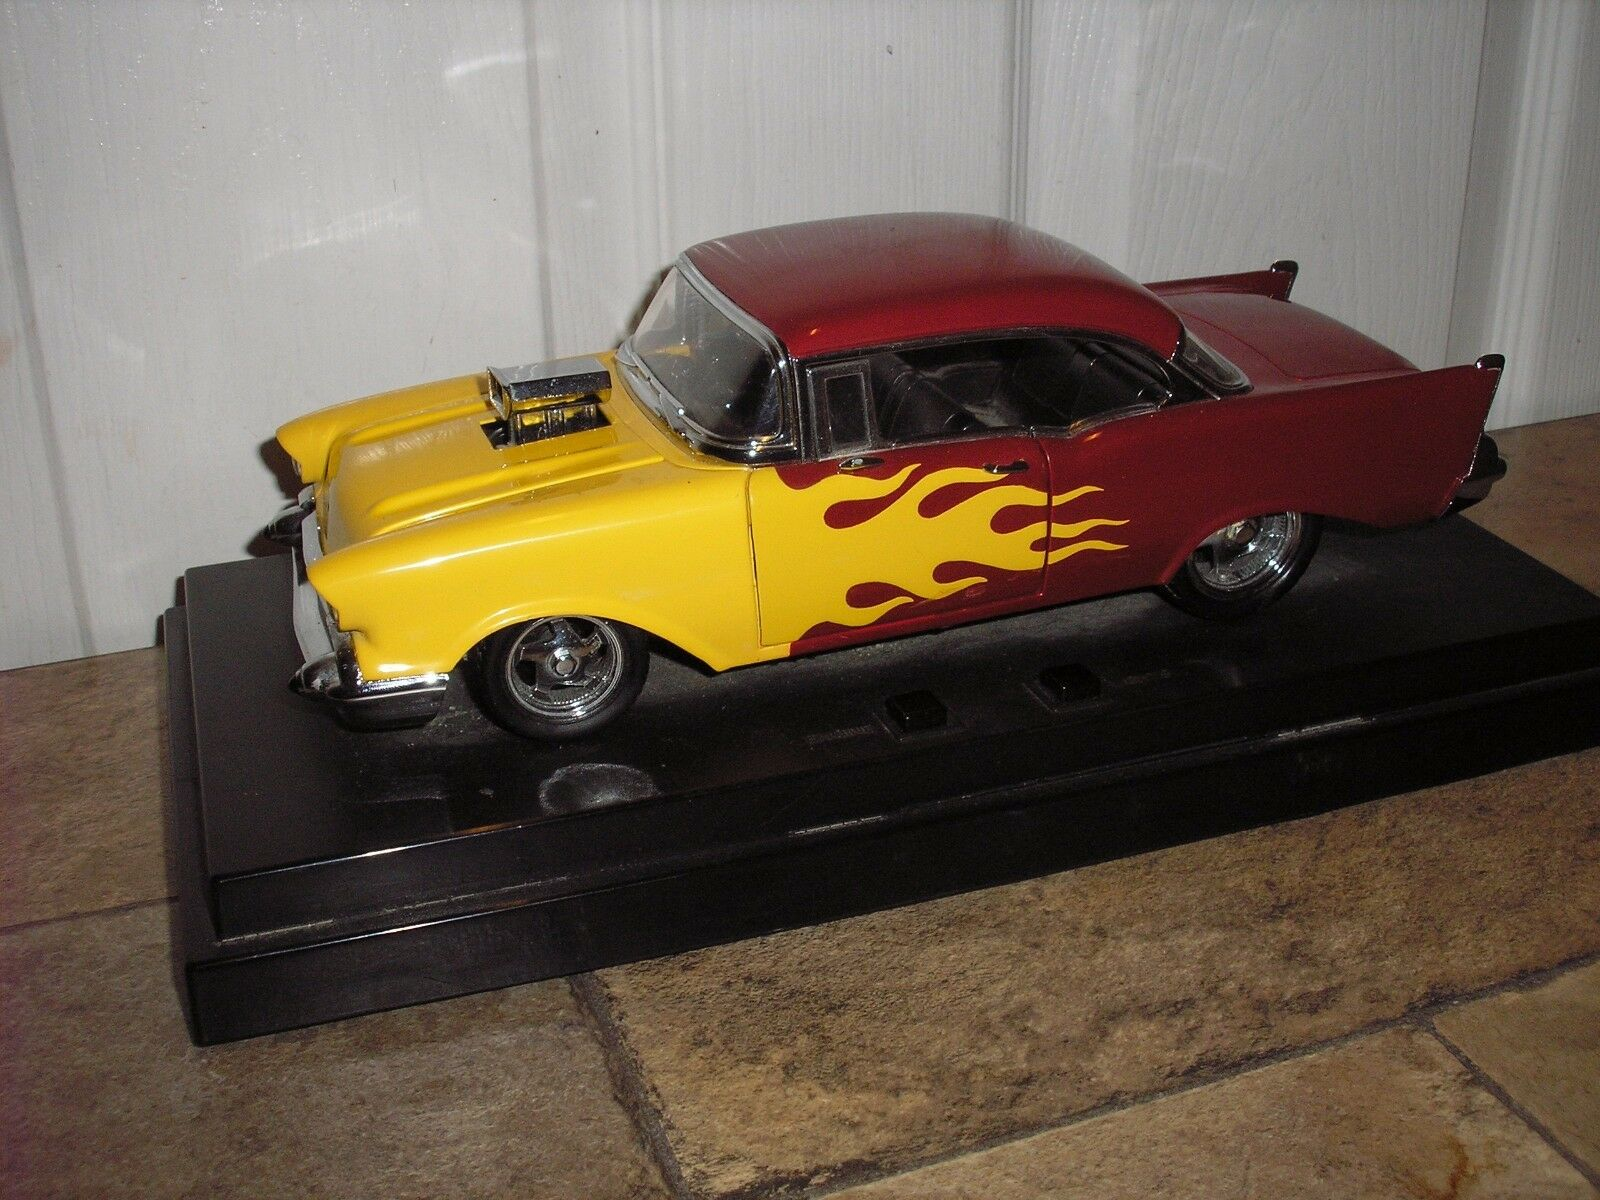 RARE 1 18 Ertl American Muscle 1957 Chevy Bel Bel Bel Air Red w Yellow Flames FREE SHIP b40000